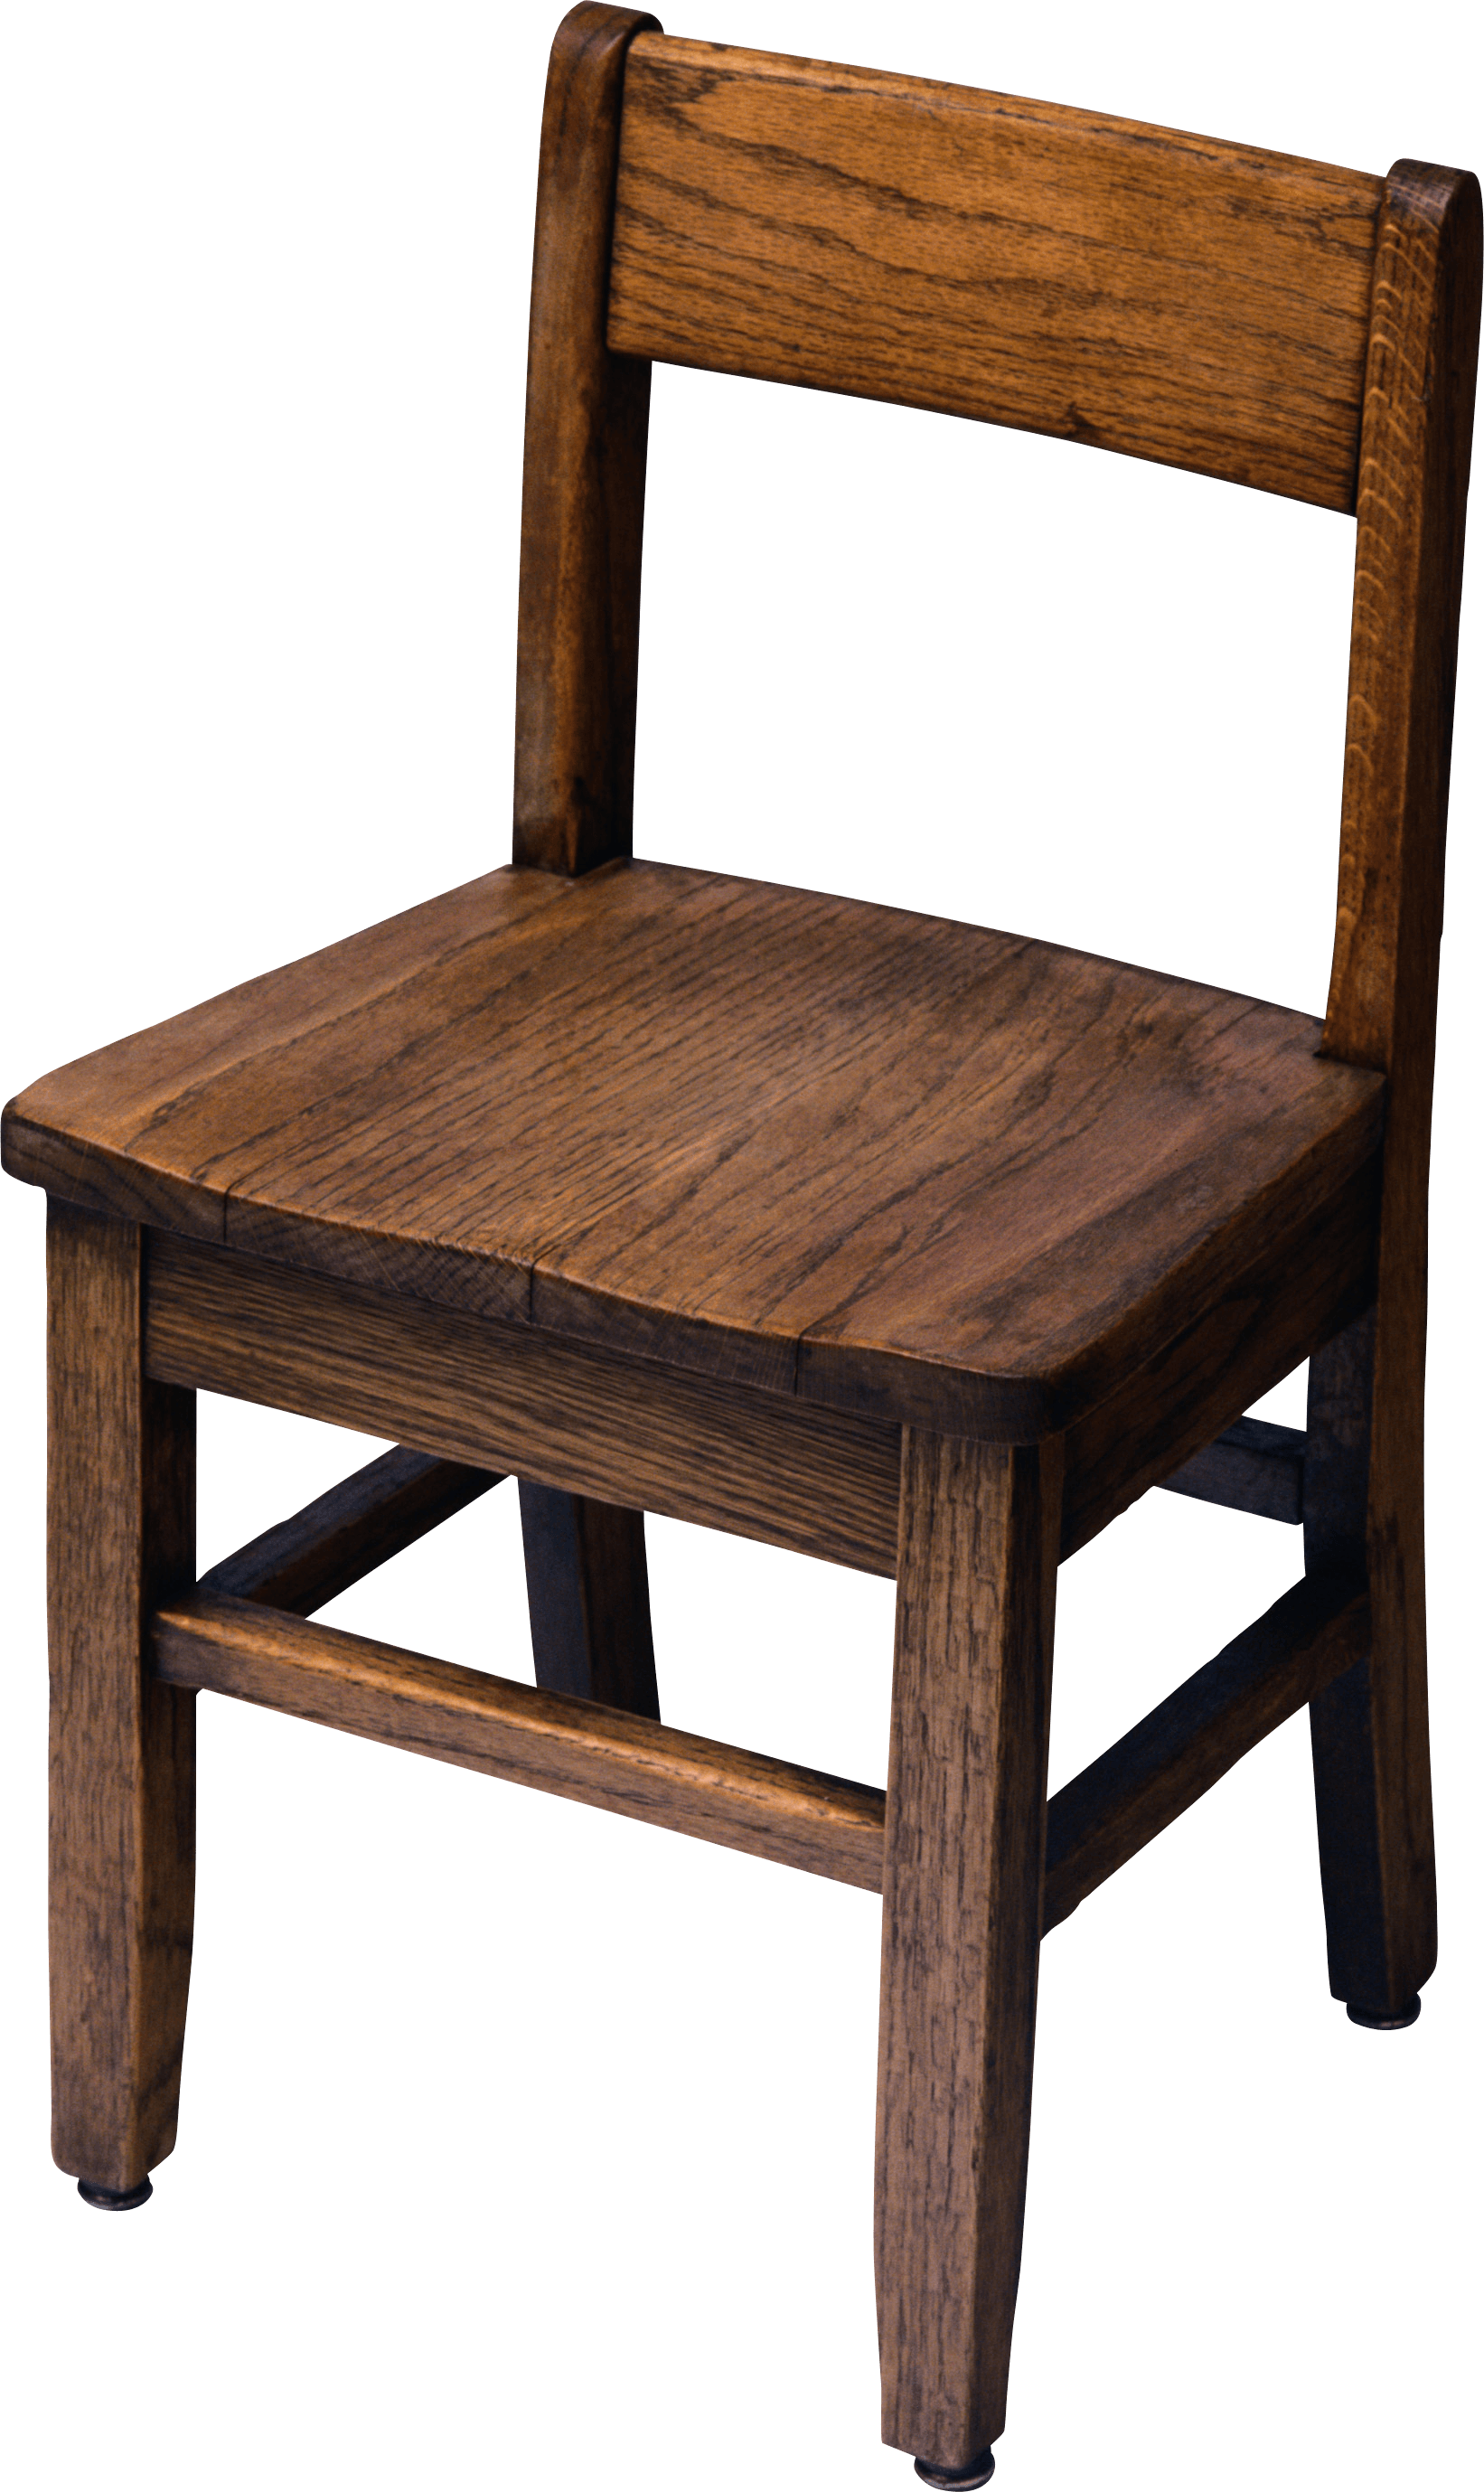 Old Wooden Chair Transpa Png Stickpng